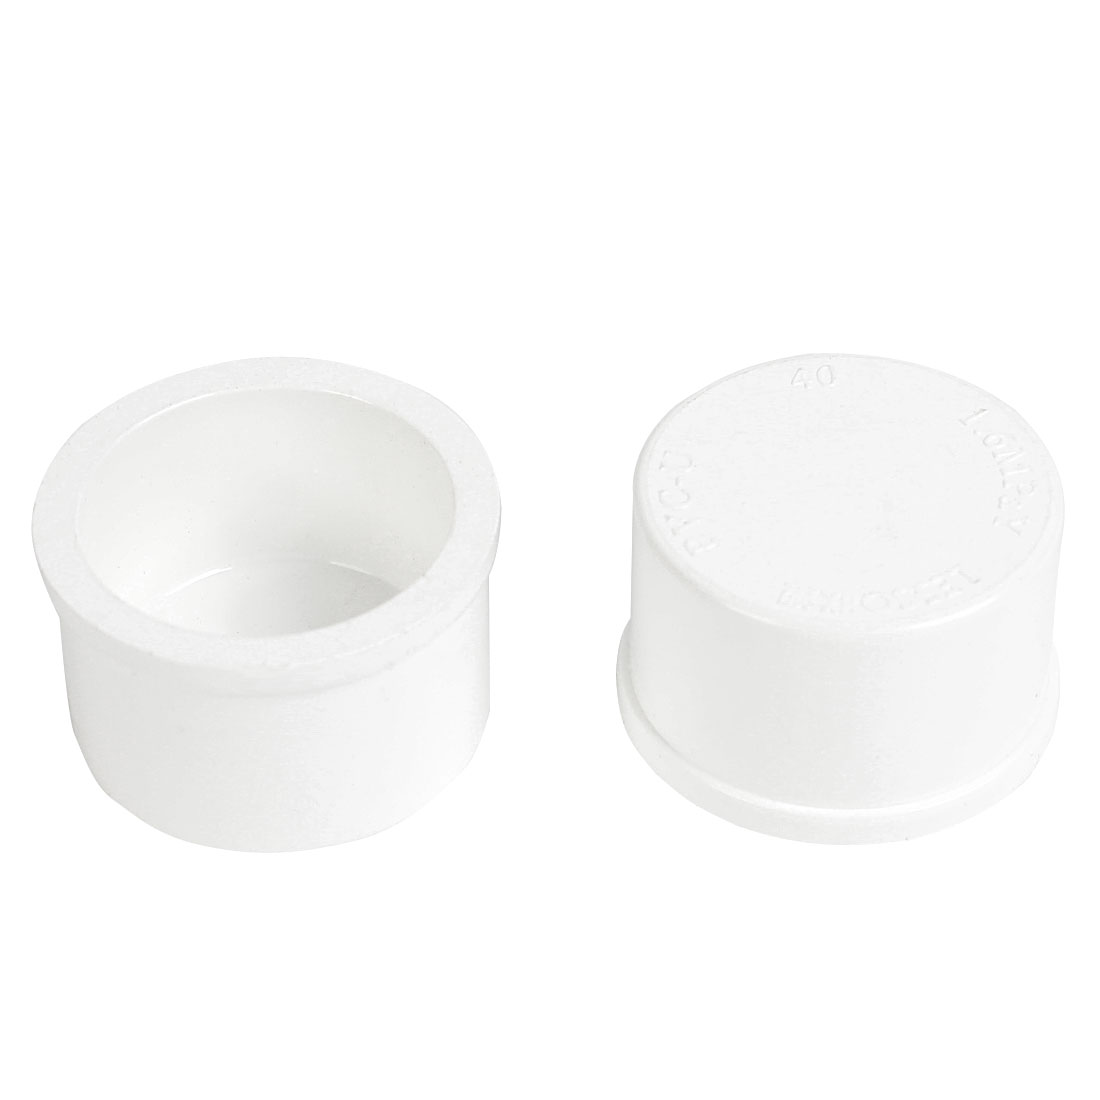 2 Pcs White Plastic 40mm Inner Dia 20mm Inside Depth End Cap Pipe Cover